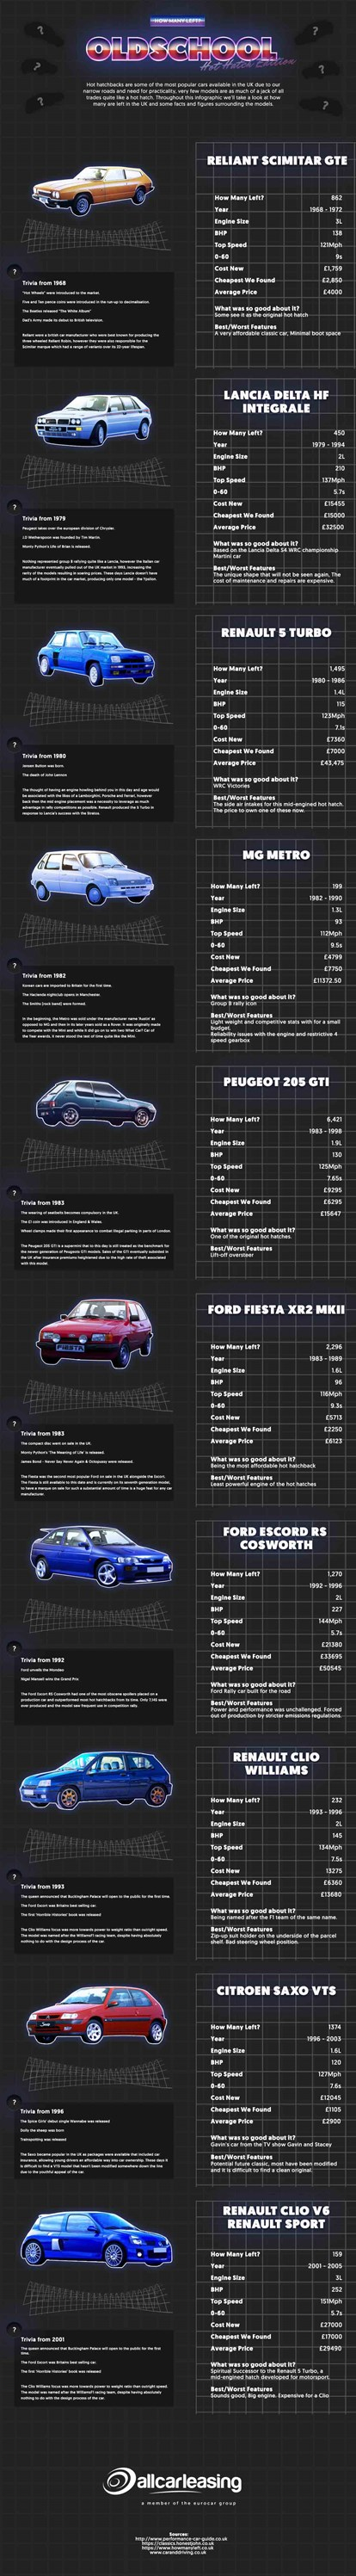 Old School Hot Hatches Infographic